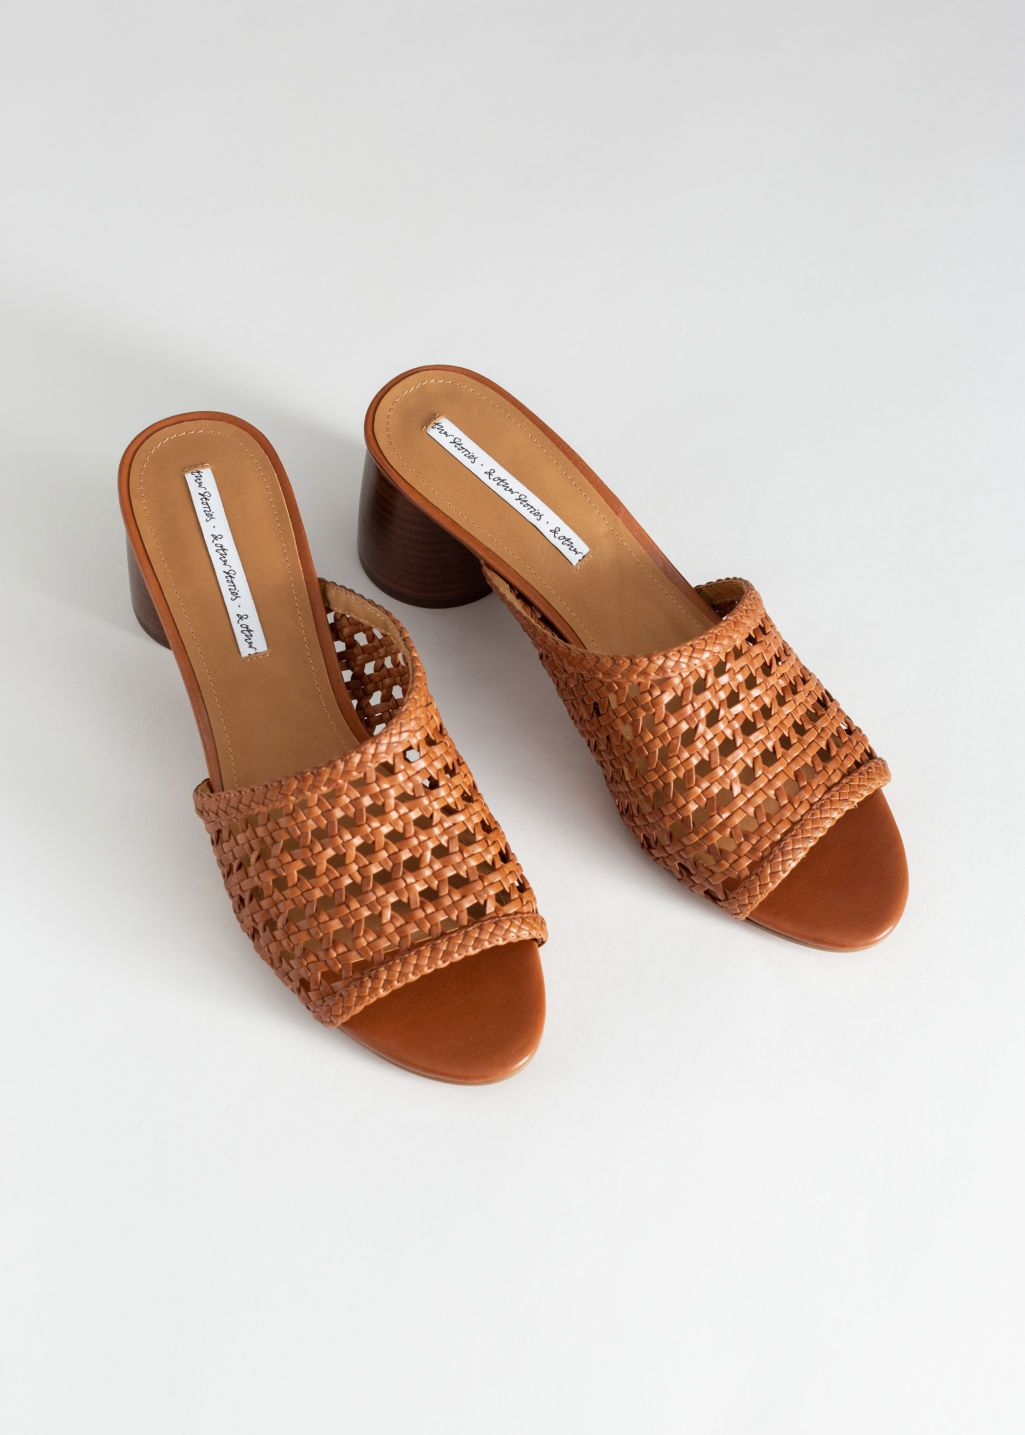 9deeb0b837c Woven Leather Heeled Sandals in 2019 | Accessories | Leather heels ...